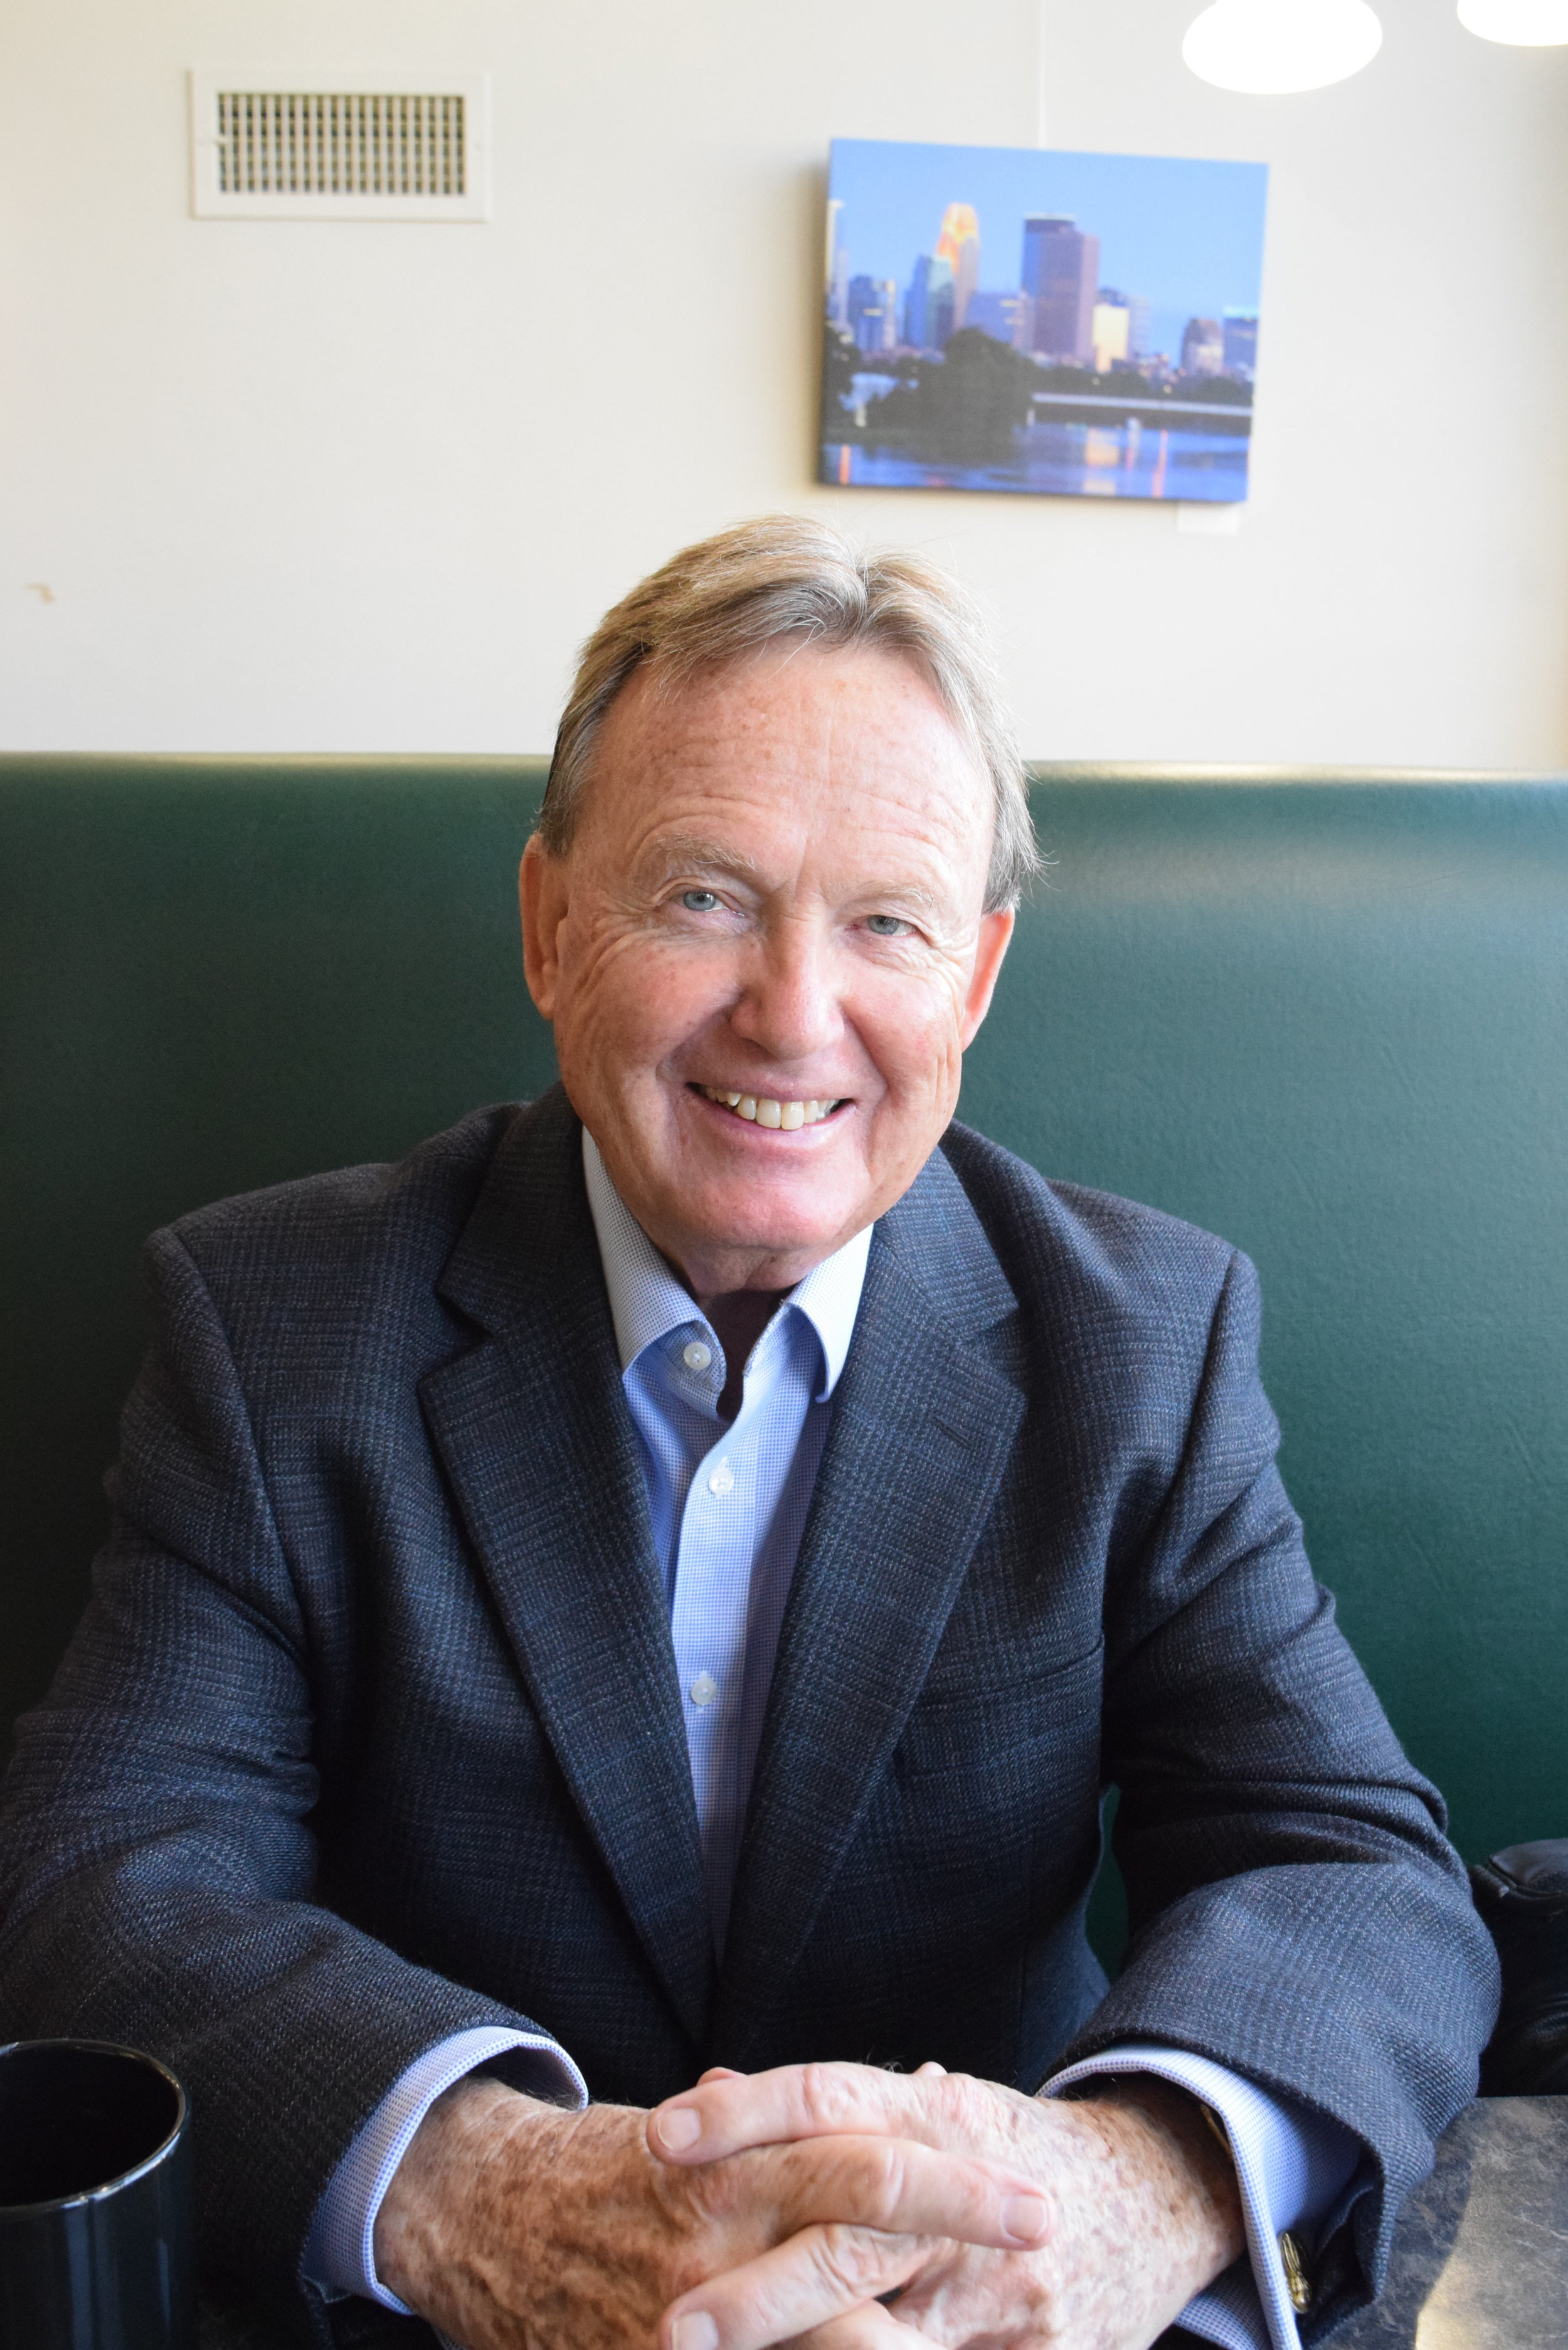 James O'Neill, an investor who currently lives in Edina, is one of the new owners of the Lowry Cafe.